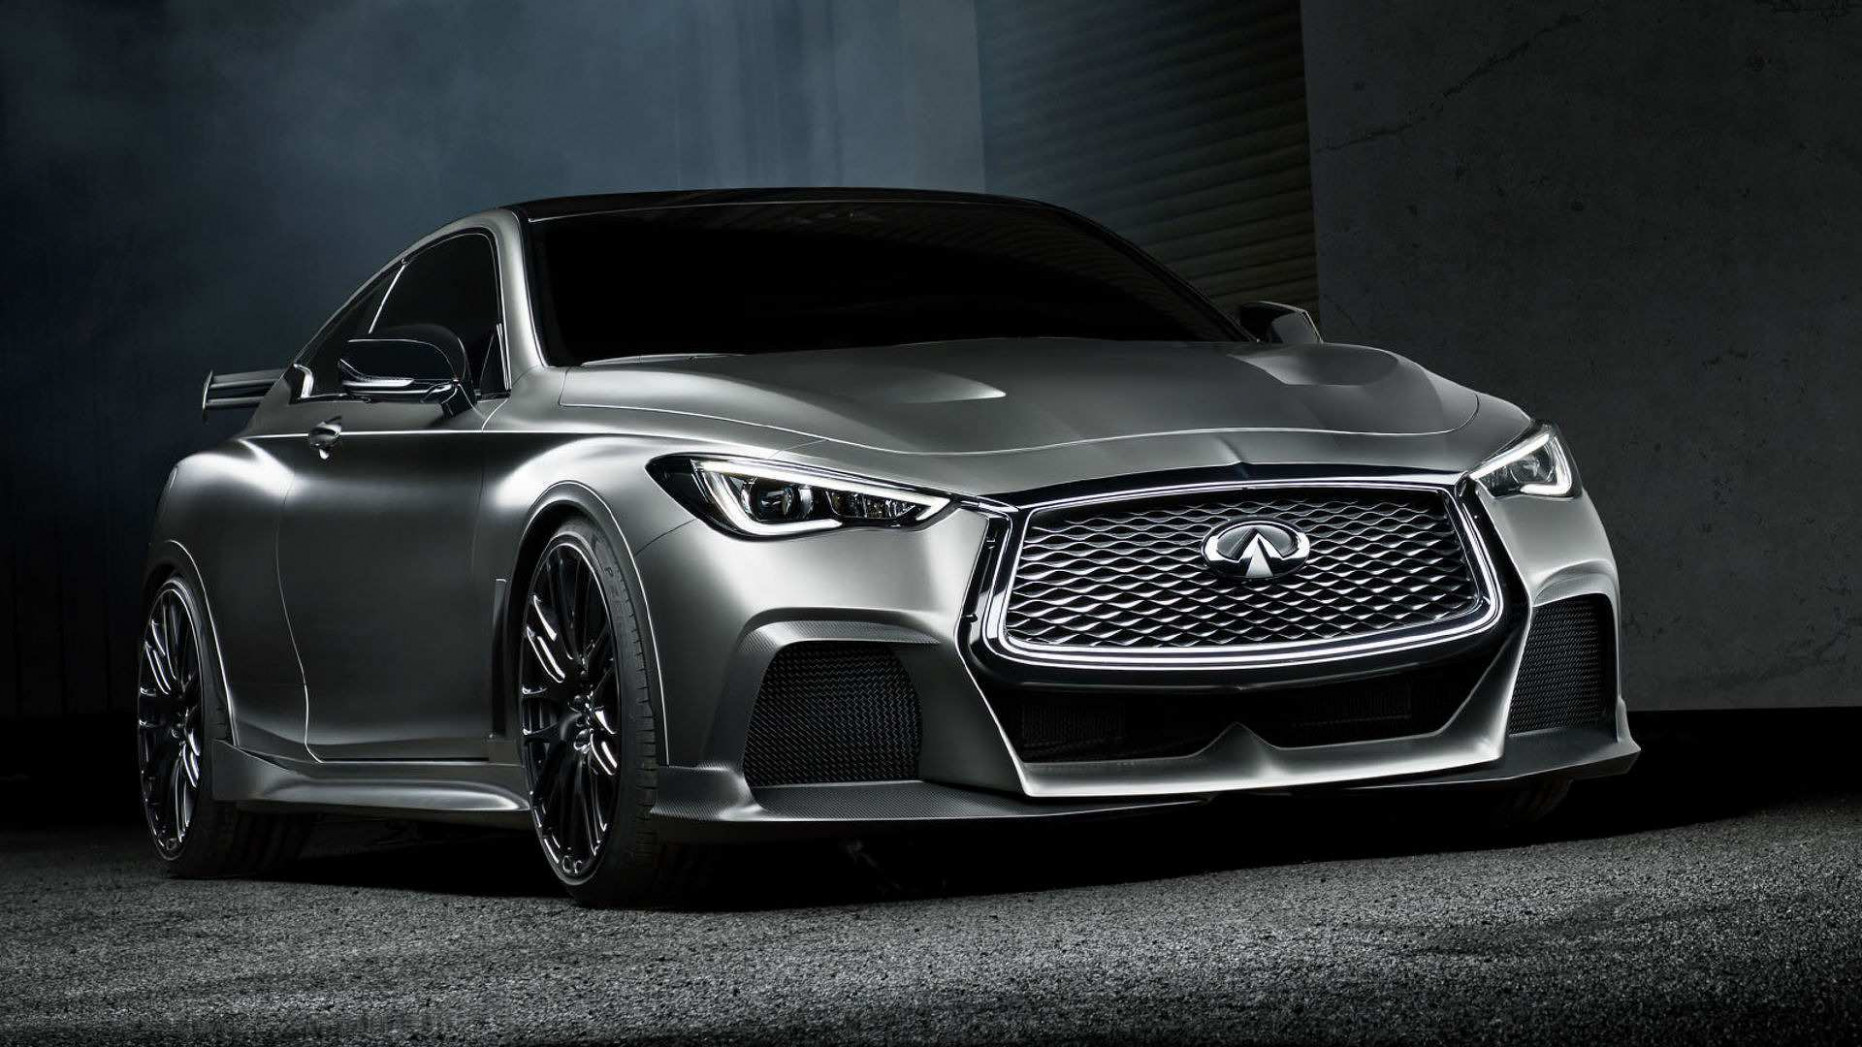 6 A 6 Infiniti G6 Concept and Review - Car Review 6 : Car ..